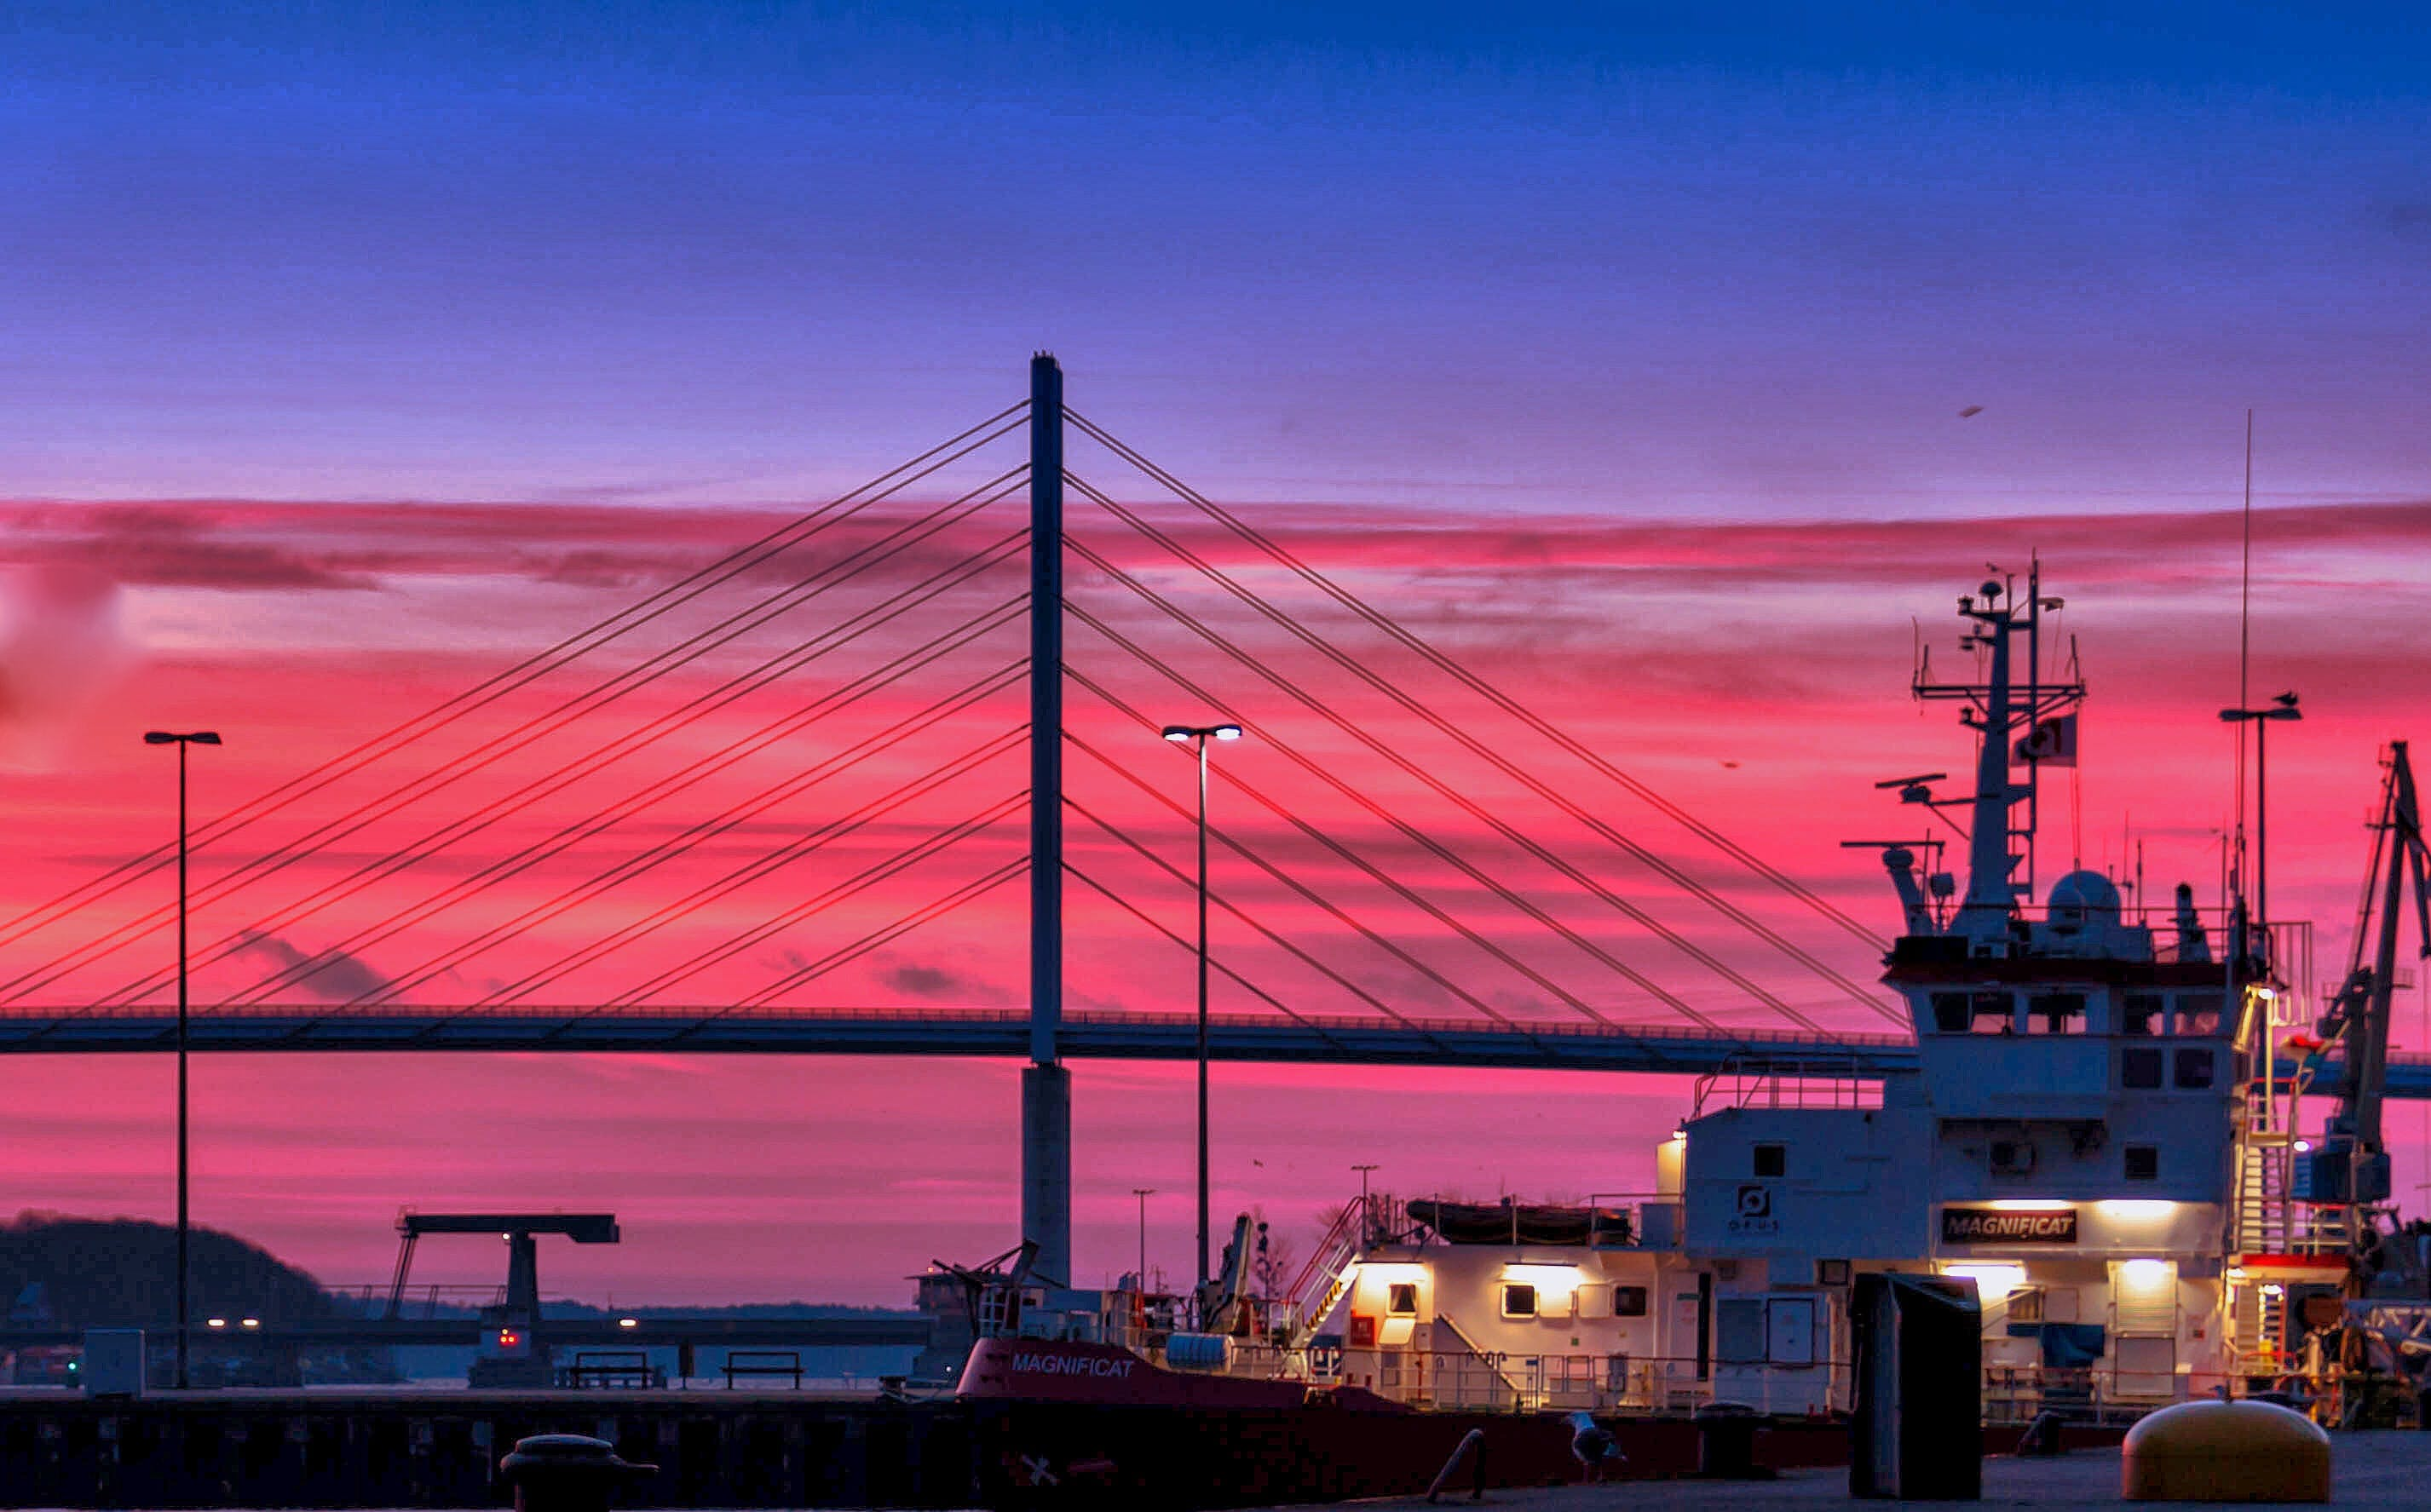 Silhouette of a Bridge Under Red Clouds and Blue Sky Taken during Night Time